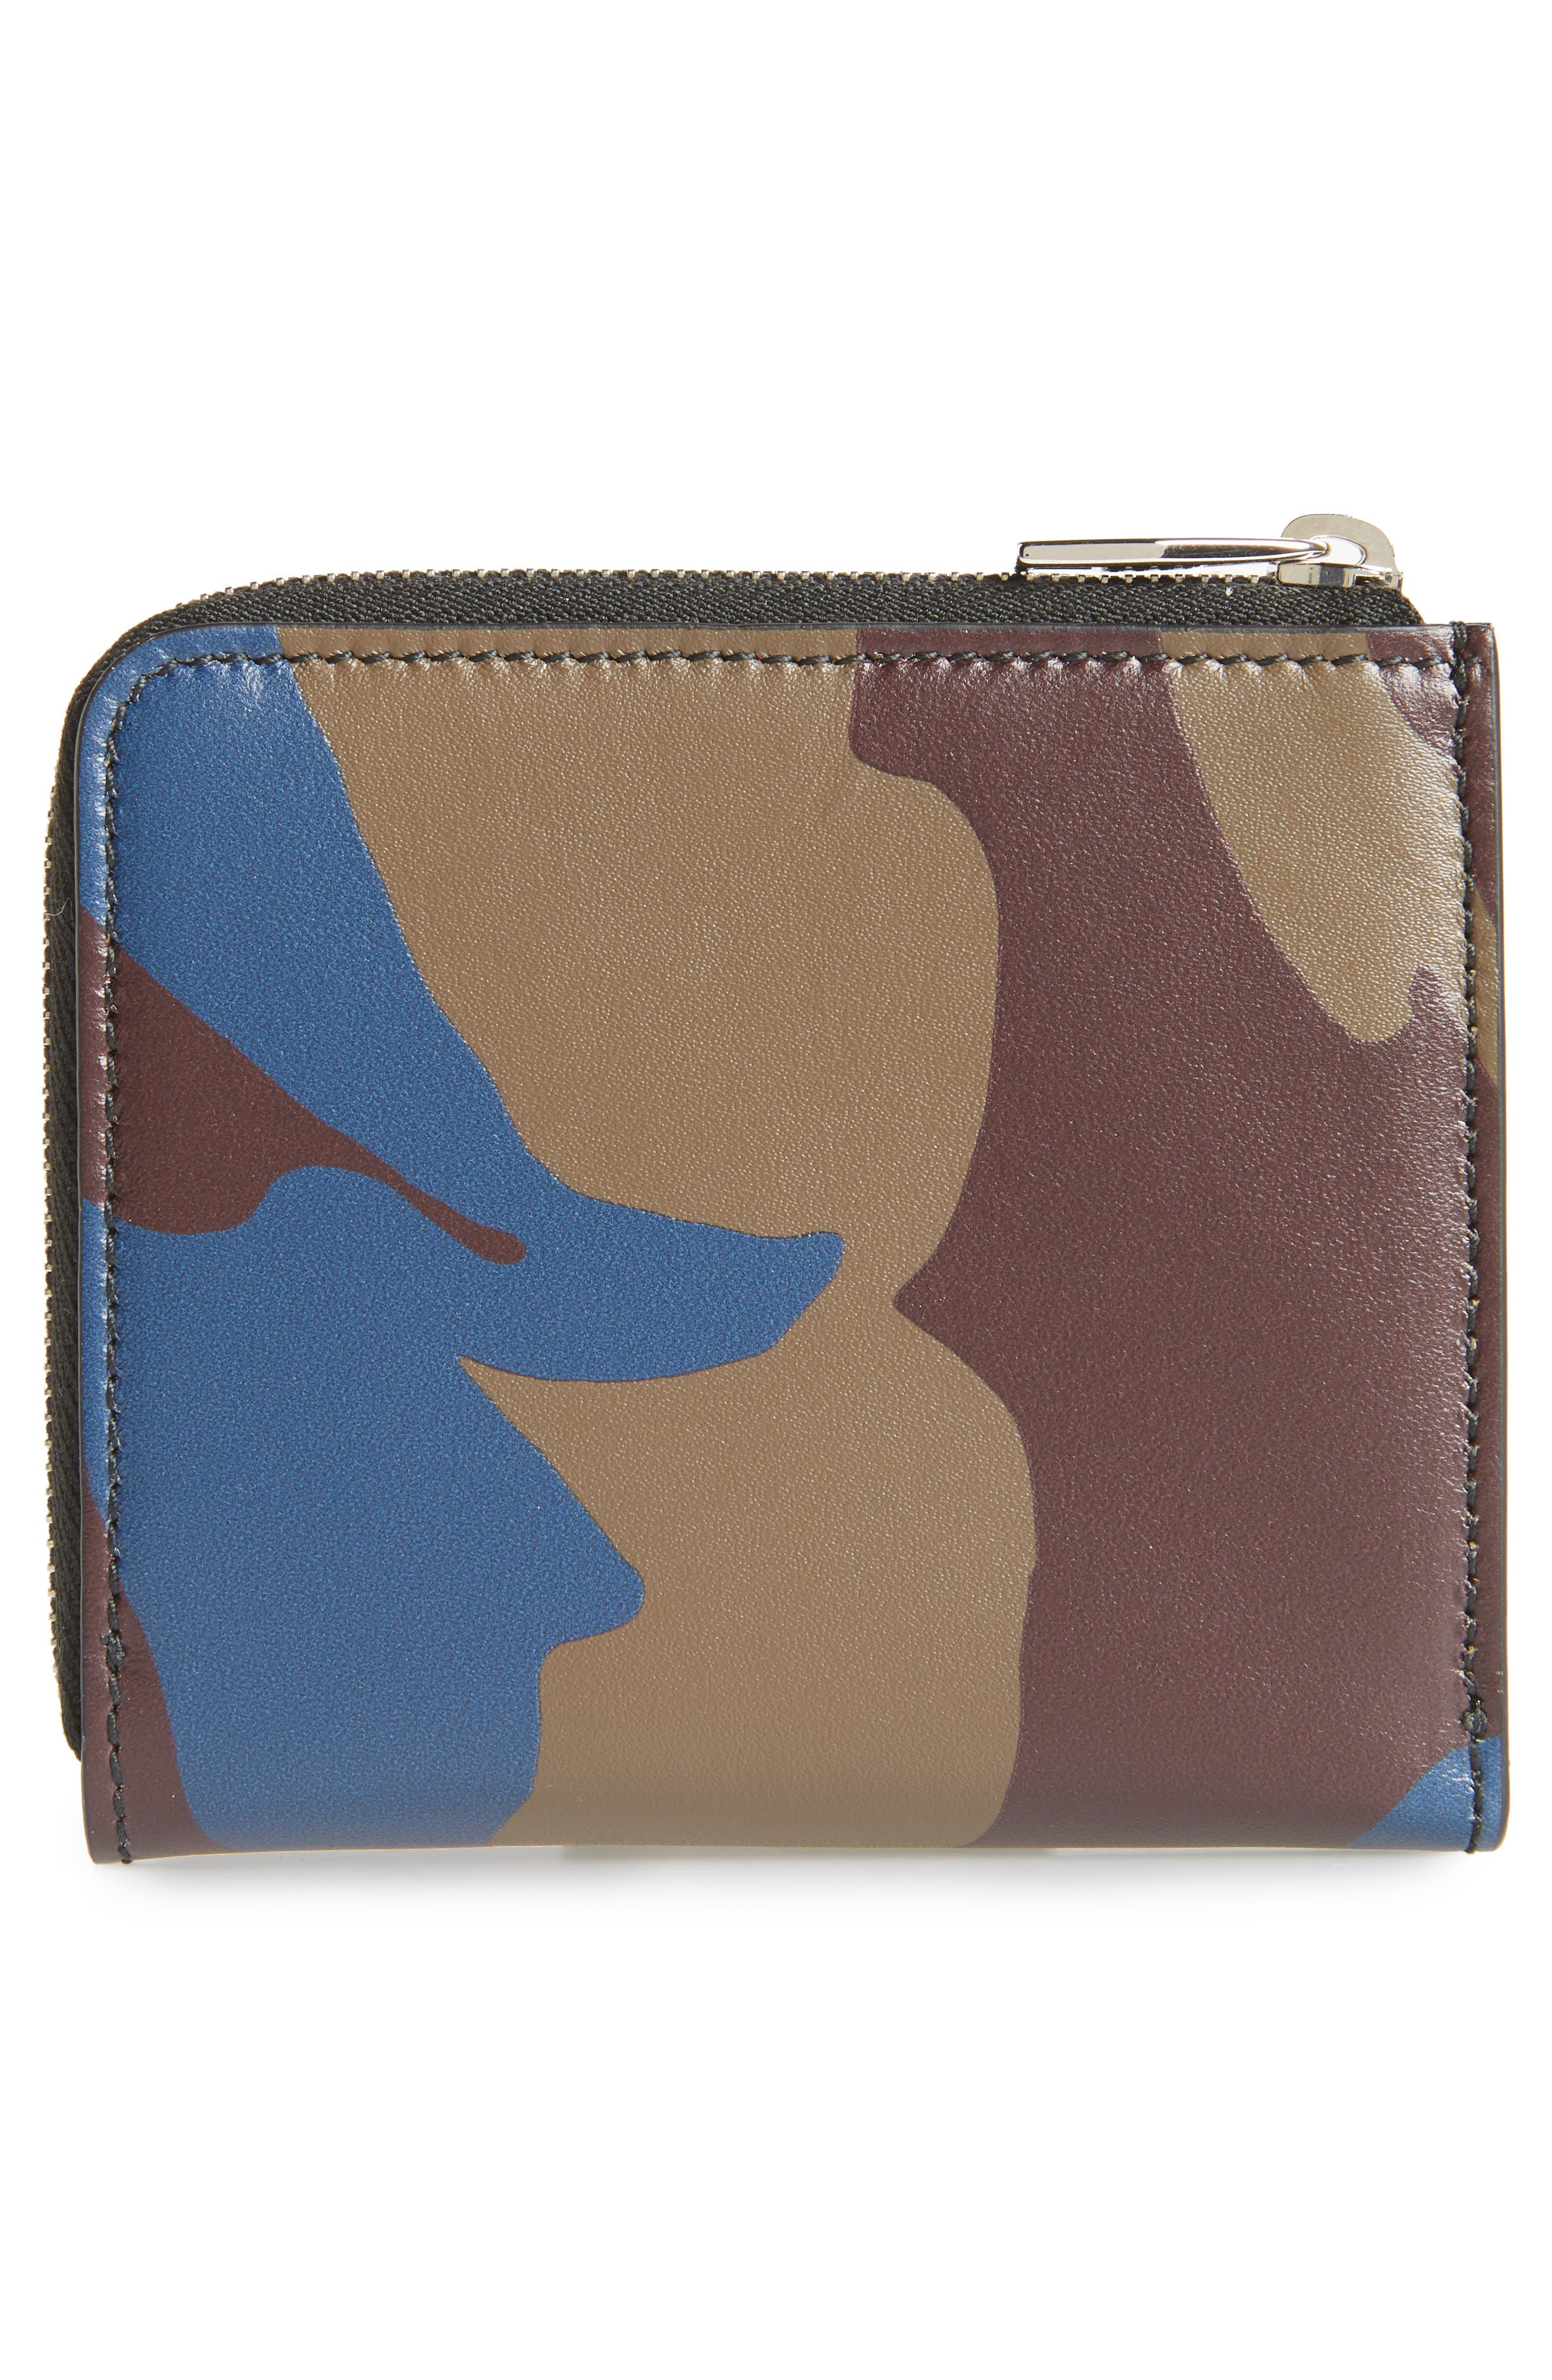 Leather Zip Coin Purse,                             Alternate thumbnail 3, color,                             941